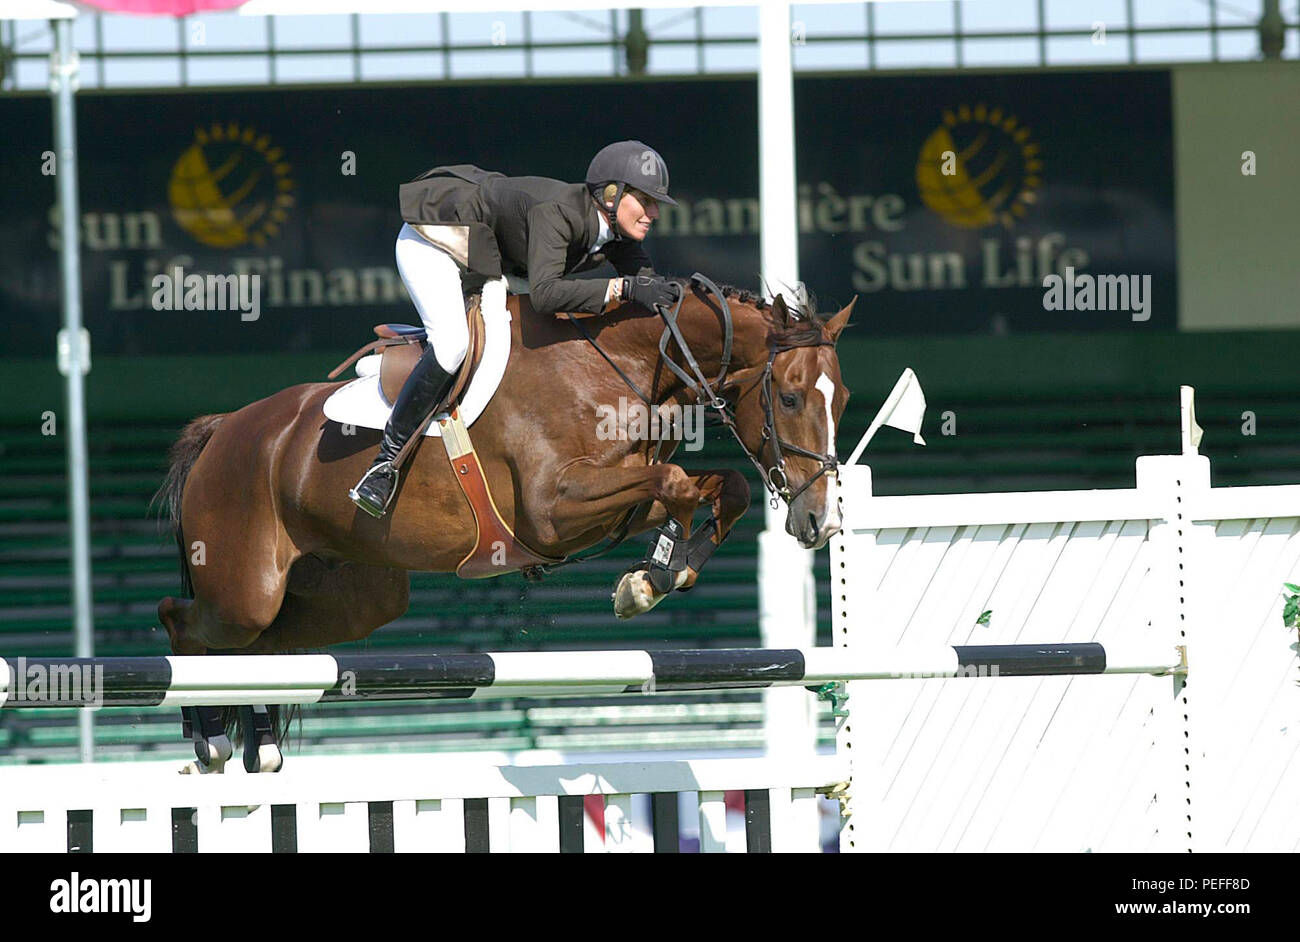 The National, Spruce Meadows, June 2001, Schuyler Riley (USA) riding Rhumbline, Akita Drilling Cup Stock Photo